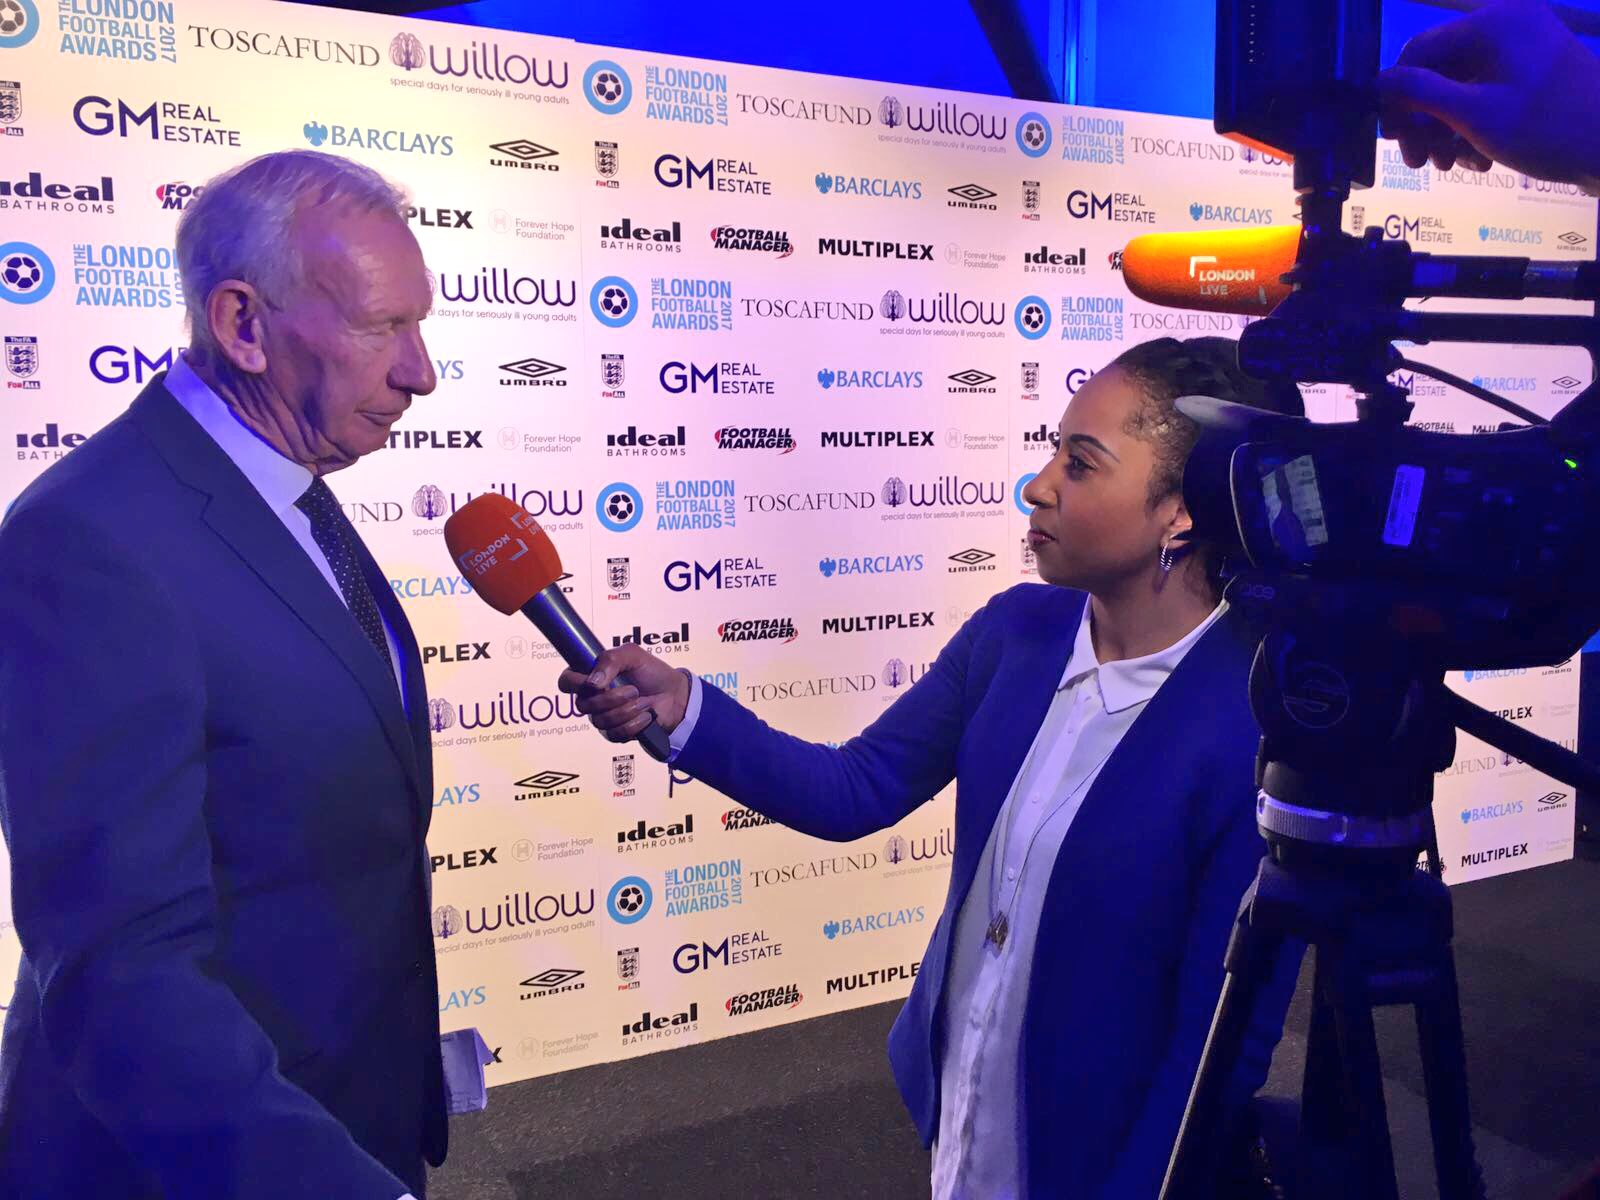 Chatting to @Willow_Fdn co-founder Bob Wilson at the #LondonFootballAwards ⚽️ #londonlive https://t.co/5TP83hW5PQ